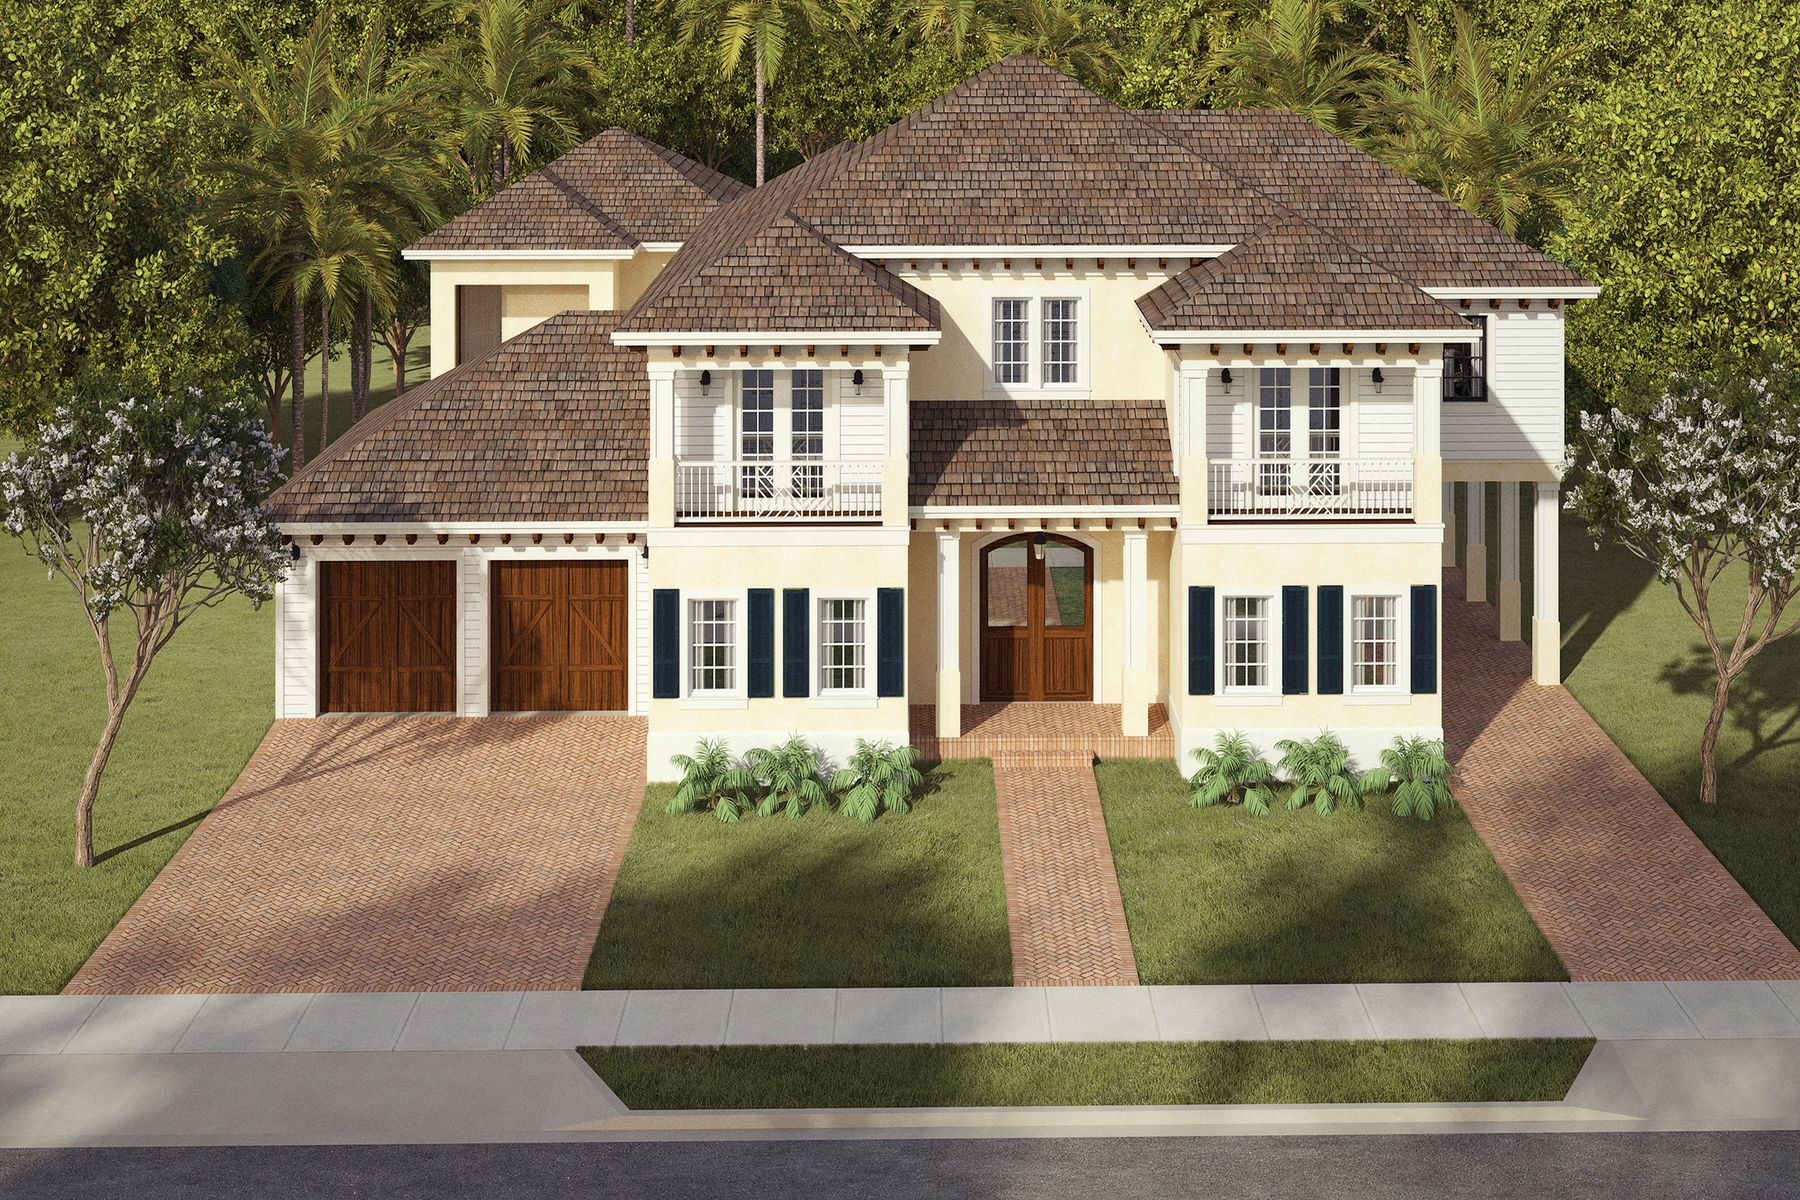 Single Family Home for Active at New Residentual Construction 127 Potter Rd West Palm Beach, Florida 33405 United States